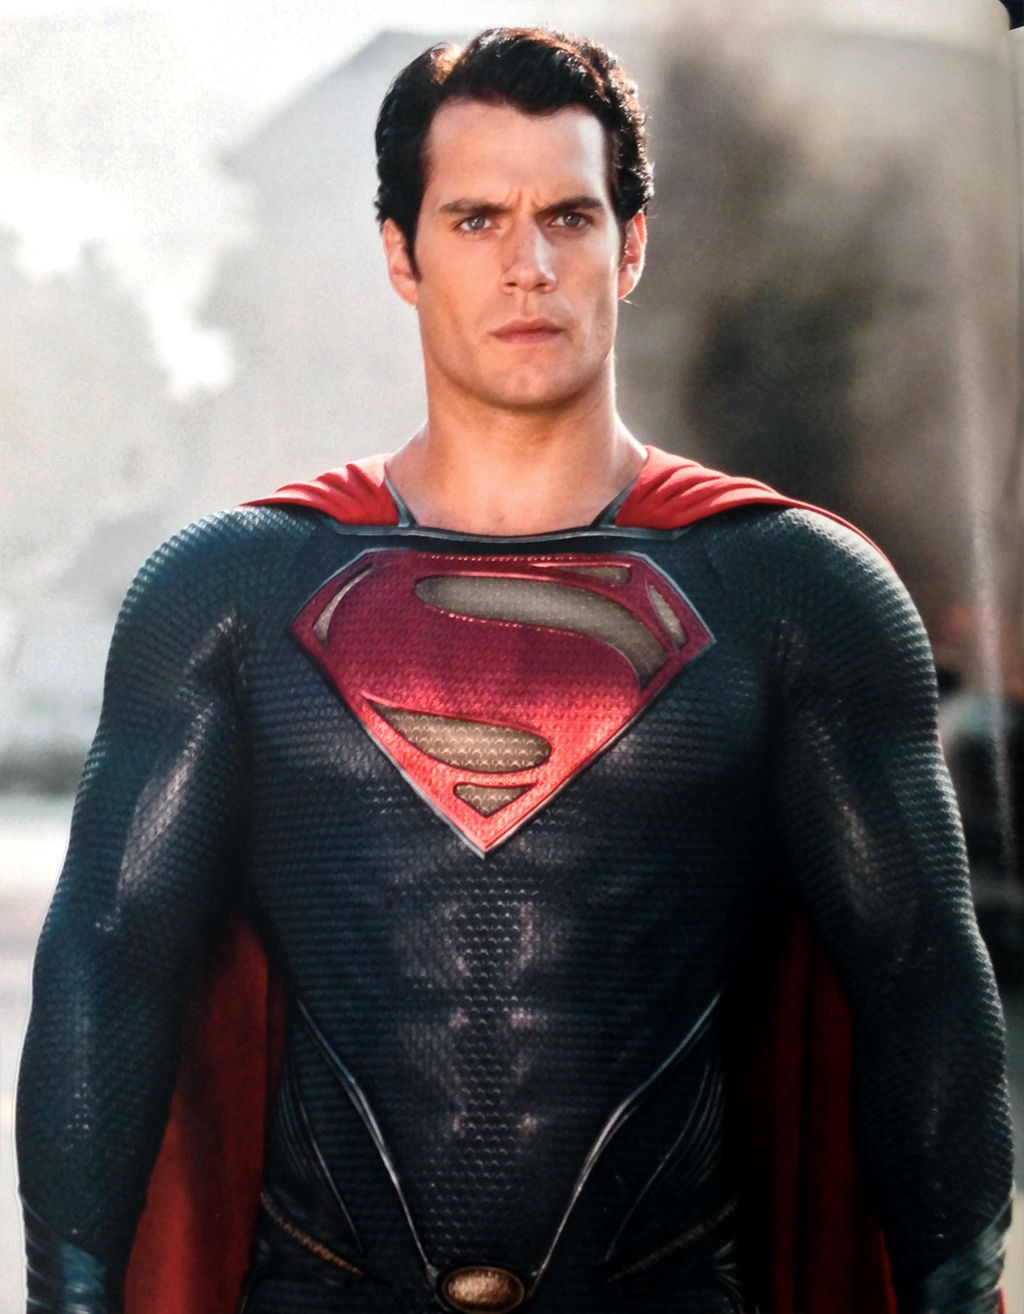 Henry Cavill as Man of Steel in Walmart Official Movie Guide   13ajpg 1024x1314